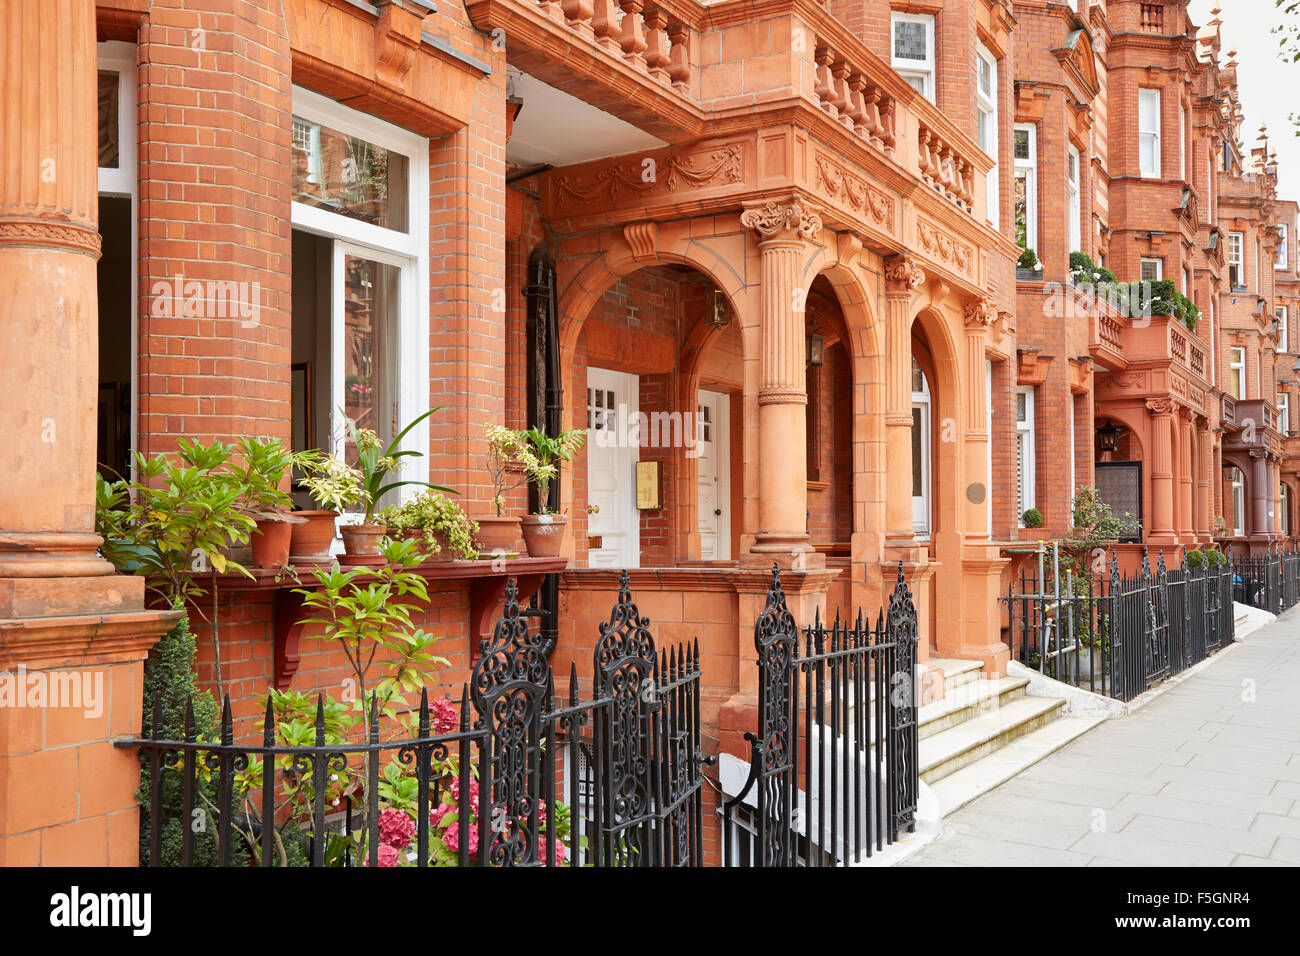 Row of red bricks houses in London - Stock Image